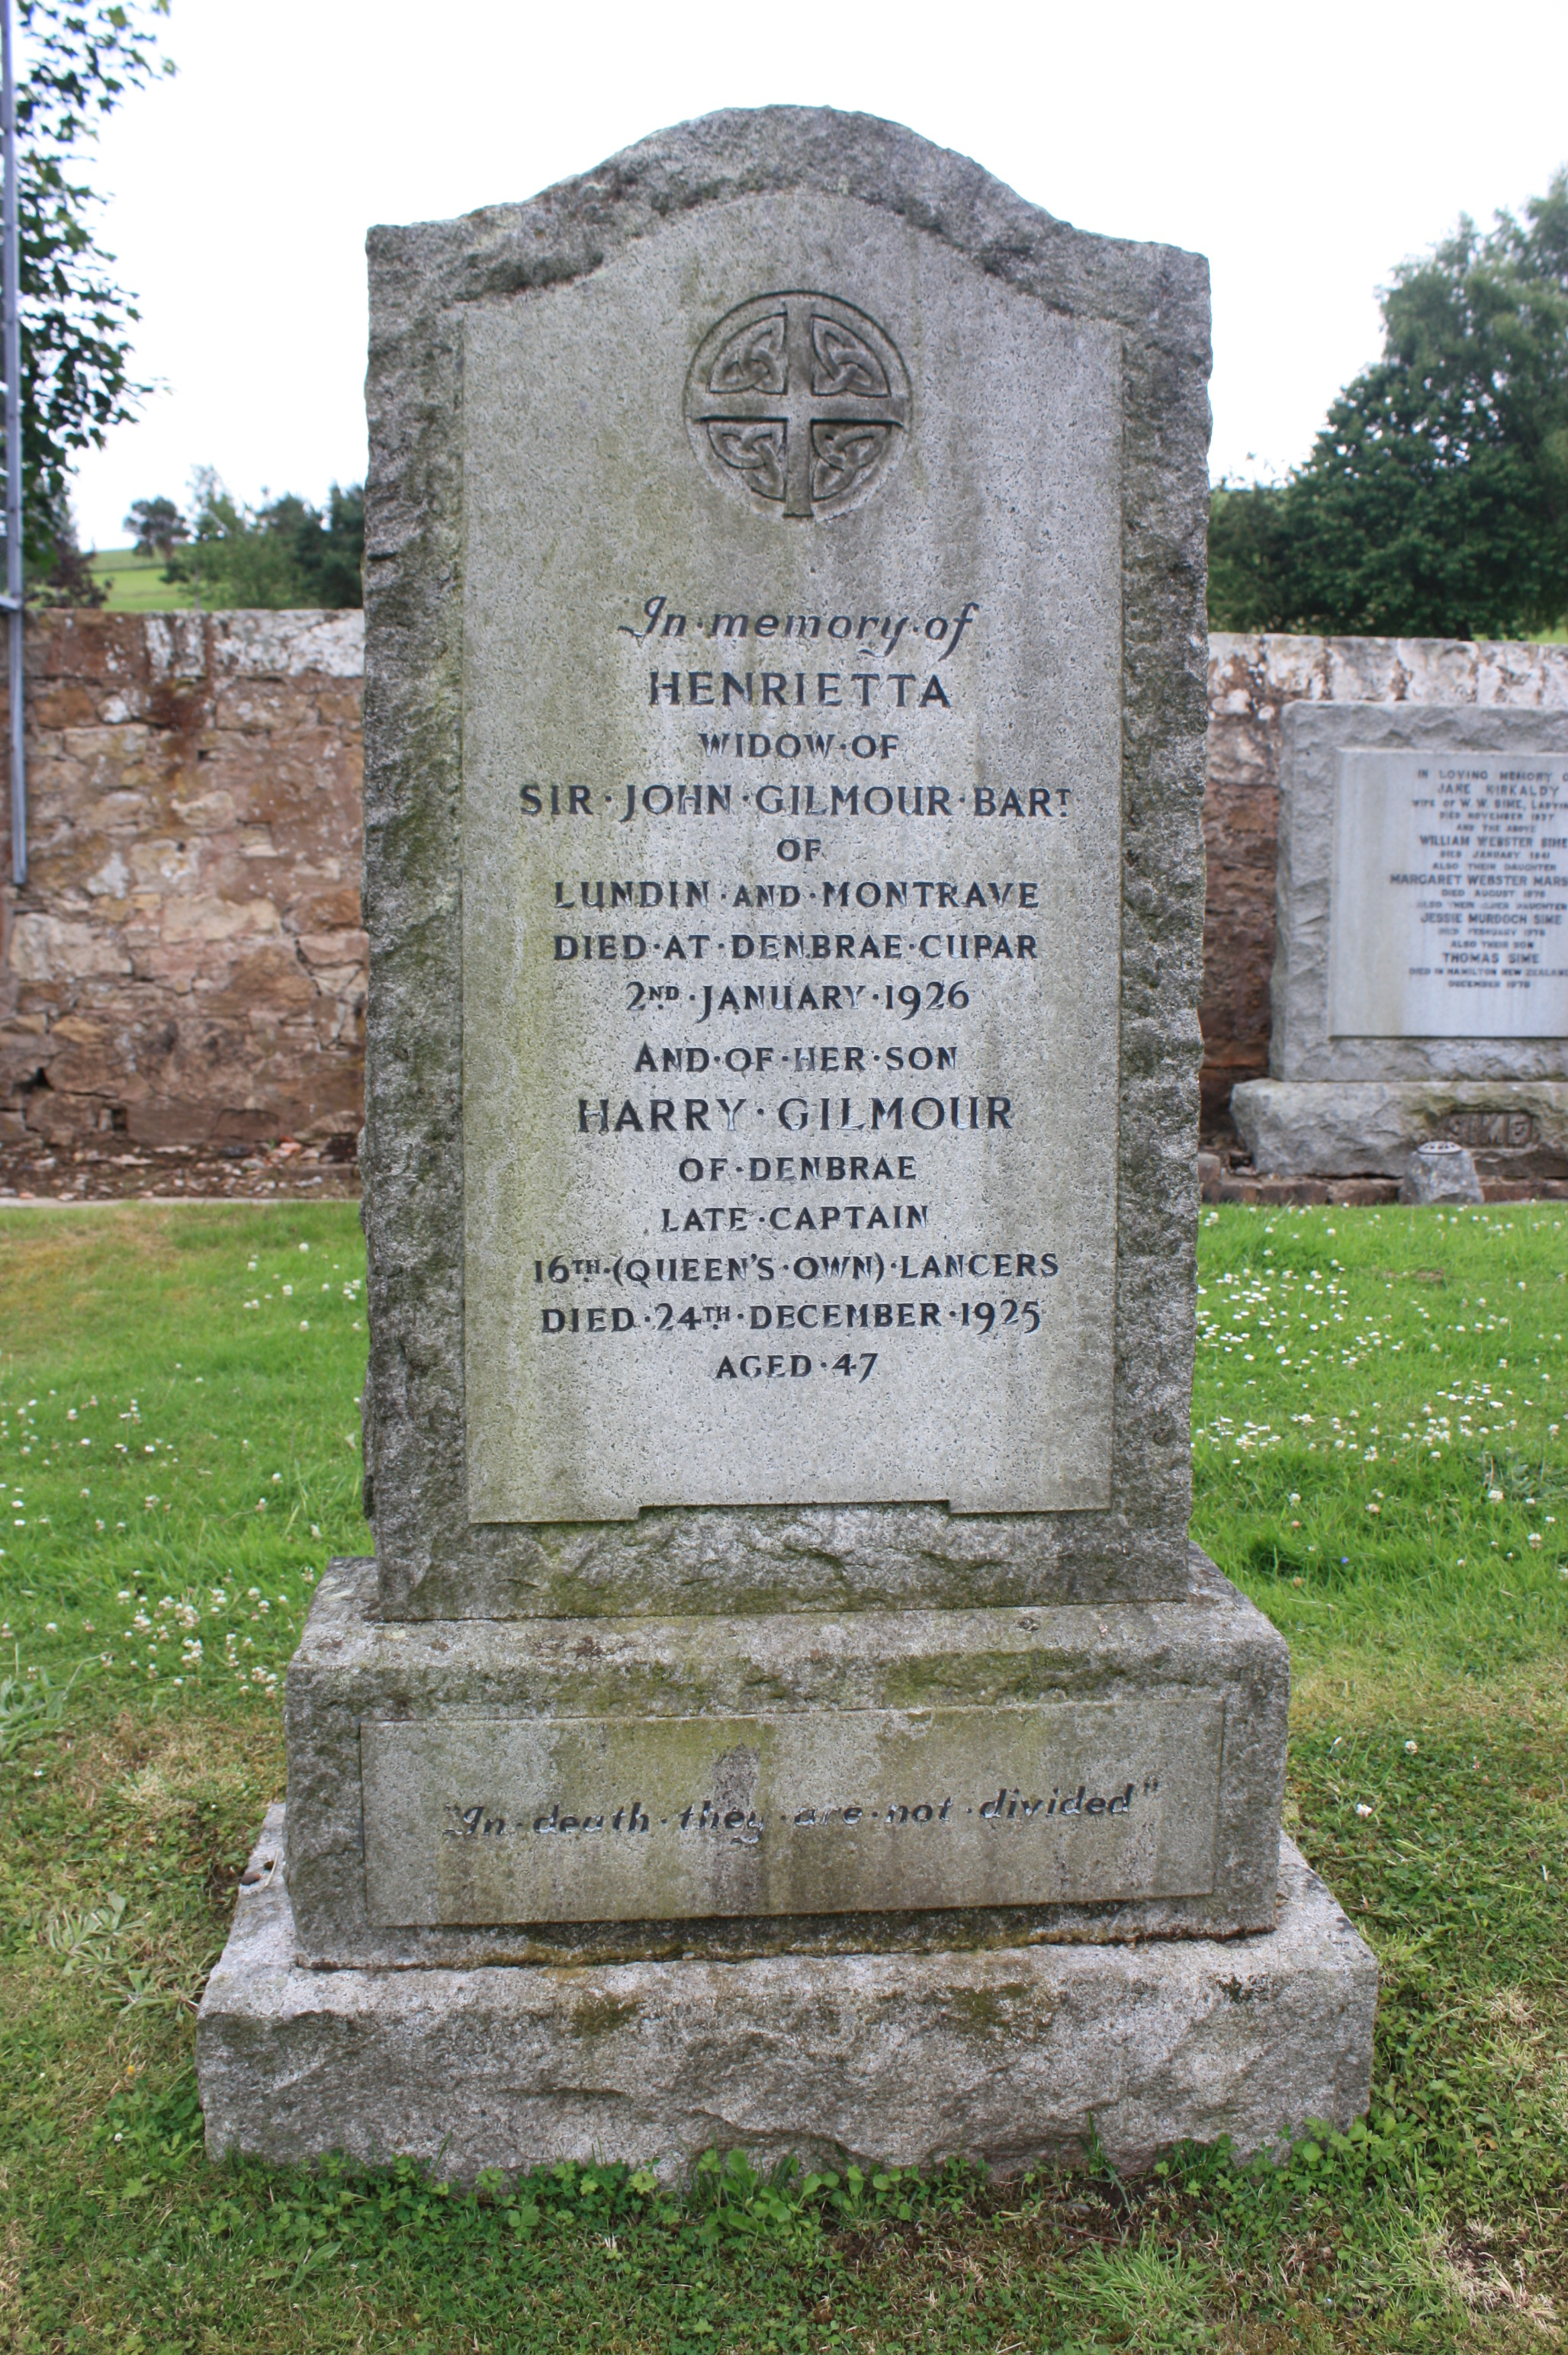 Cupar Cemetery in Cupar, Fife - Find A Grave Cemetery